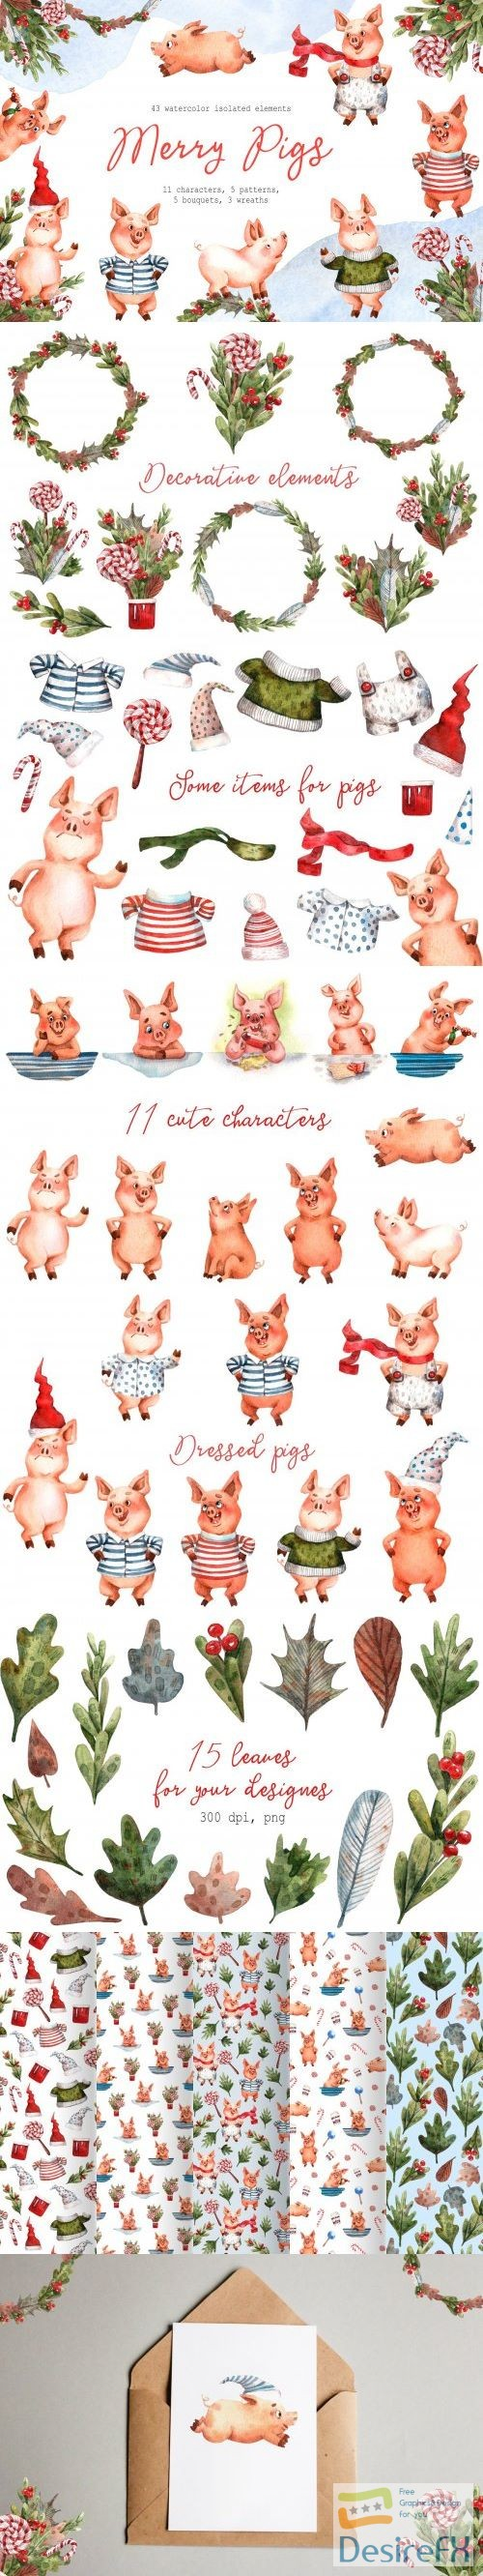 stock-images - Merry Pigs - Watercolor Clip Art Set - 3207665